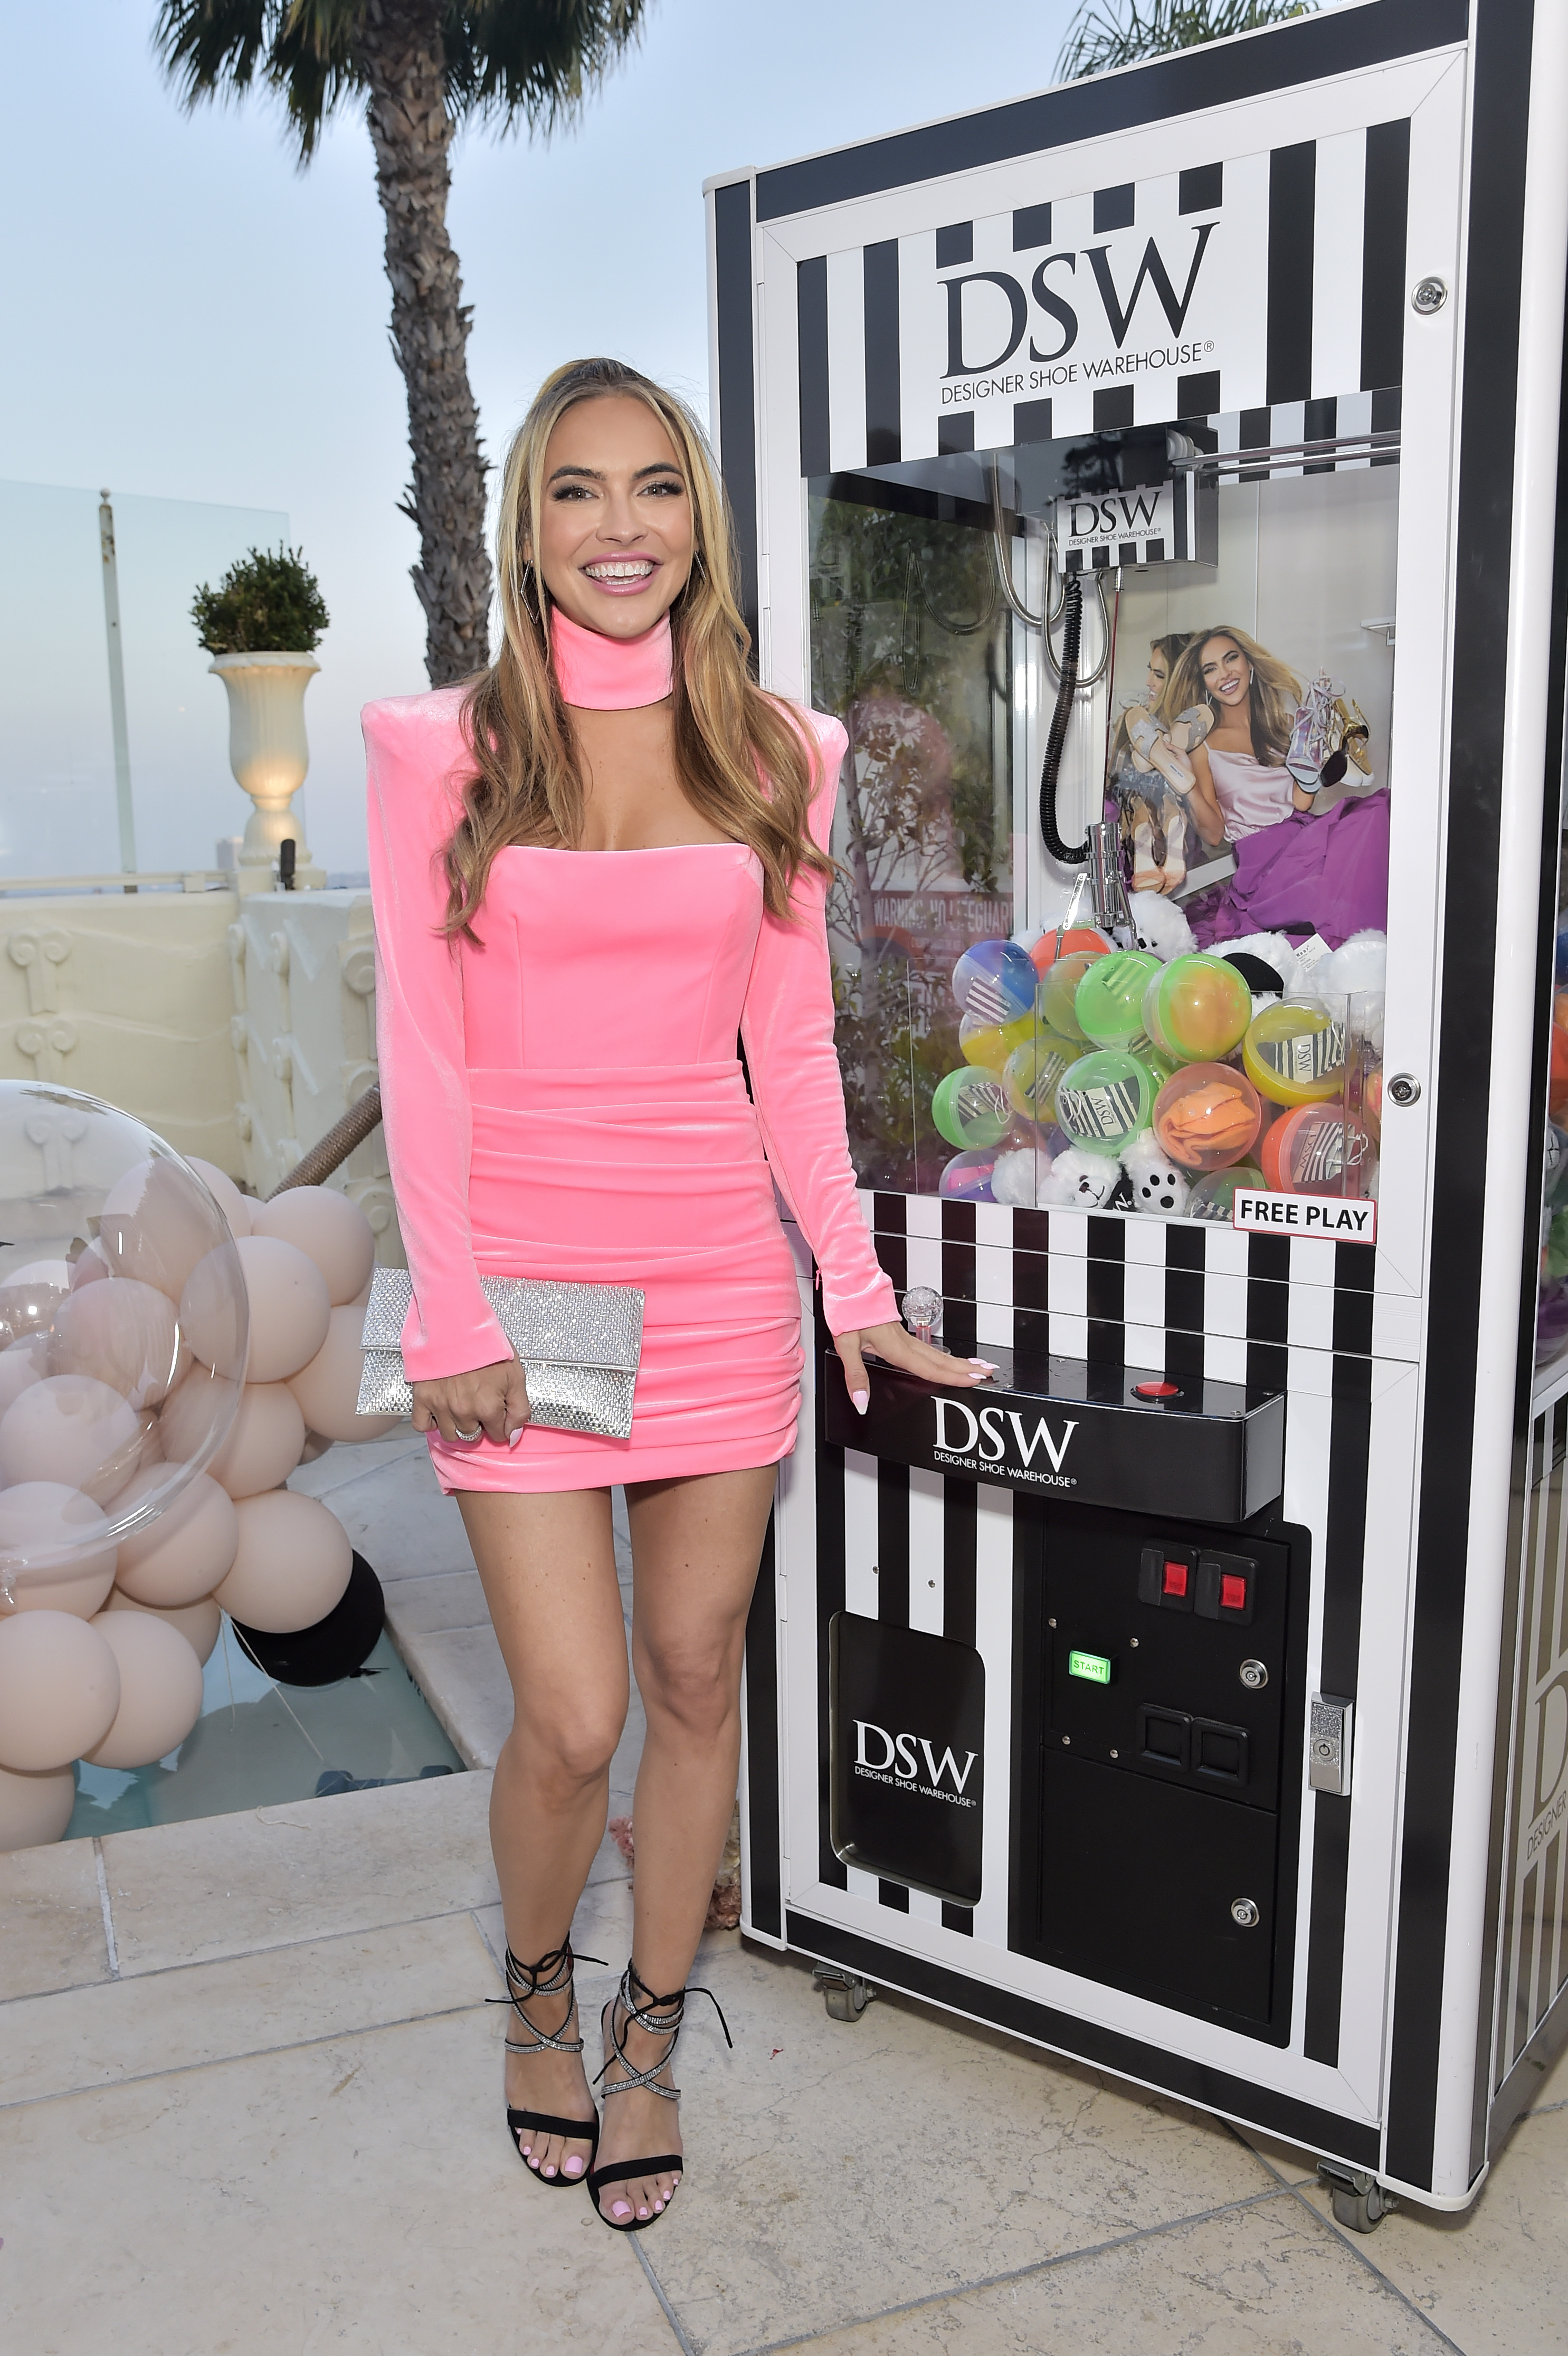 LOS ANGELES, CALIFORNIA - JULY 14: Chrishell Stause attends the celebration of Chrishell Stause's DSW Fun, Flirty Capsule Collection at Sunset Tower Hotel on July 14, 2021 in Los Angeles, California. (Photo by Stefanie Keenan/Getty Images for DSW)